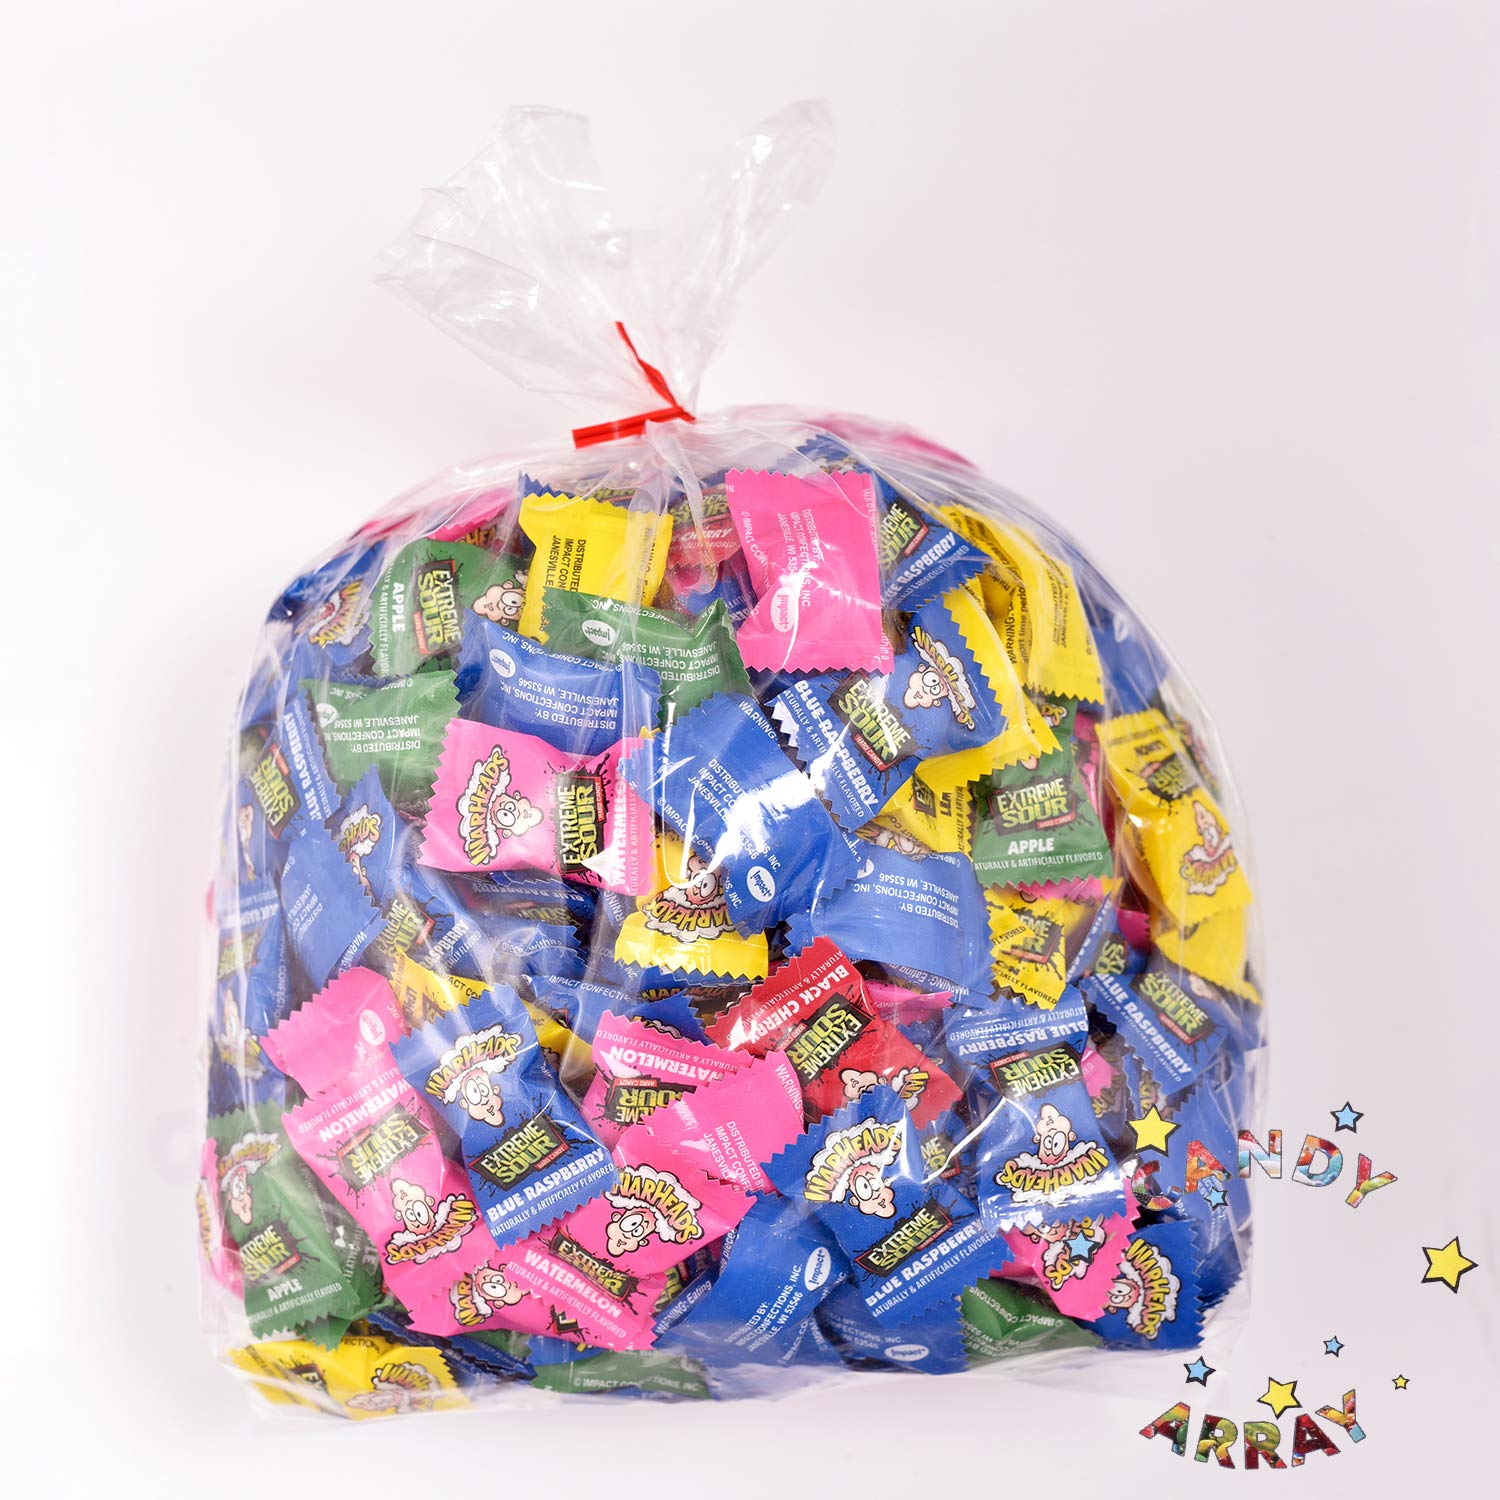 Warheads Extreme Sour Hard Candy 4 Full Pounds Bulk Pack - Approx. 425 Pieces 4Lbs Assorted Candy Flavors in Bulk - 5 Flavors Black Cherry, Watermelon, Apple, Blue Raspberry